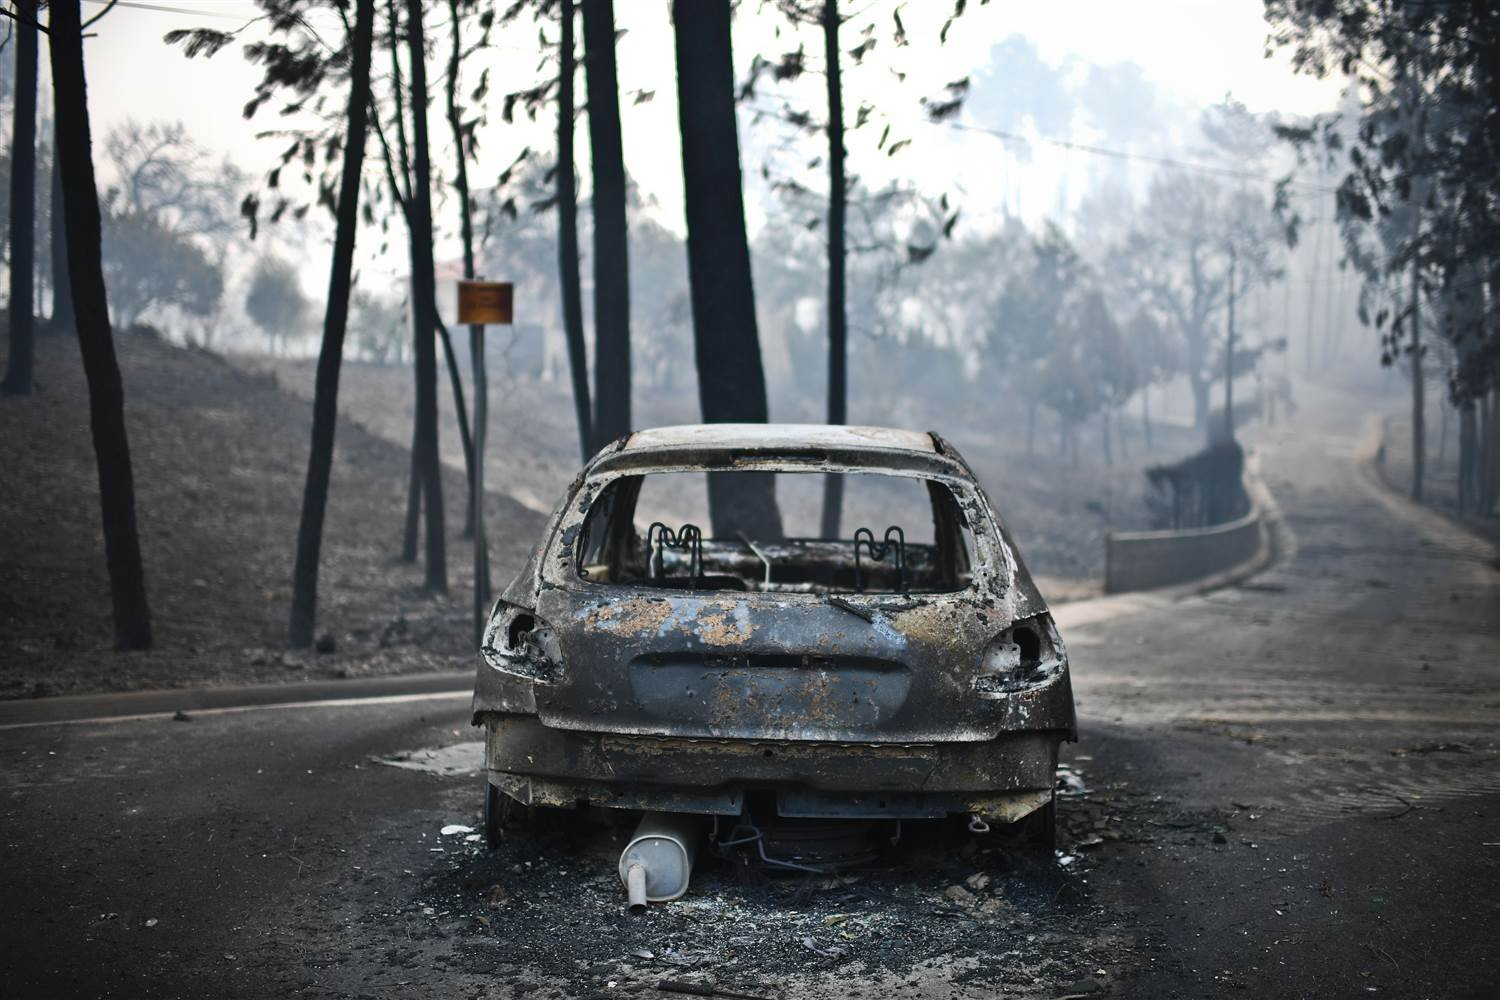 A burnt car on a road after a wildfire in Pedrogao, in central Portugal. PATRICIA DE MELO MOREIRA / AFP - Getty Images